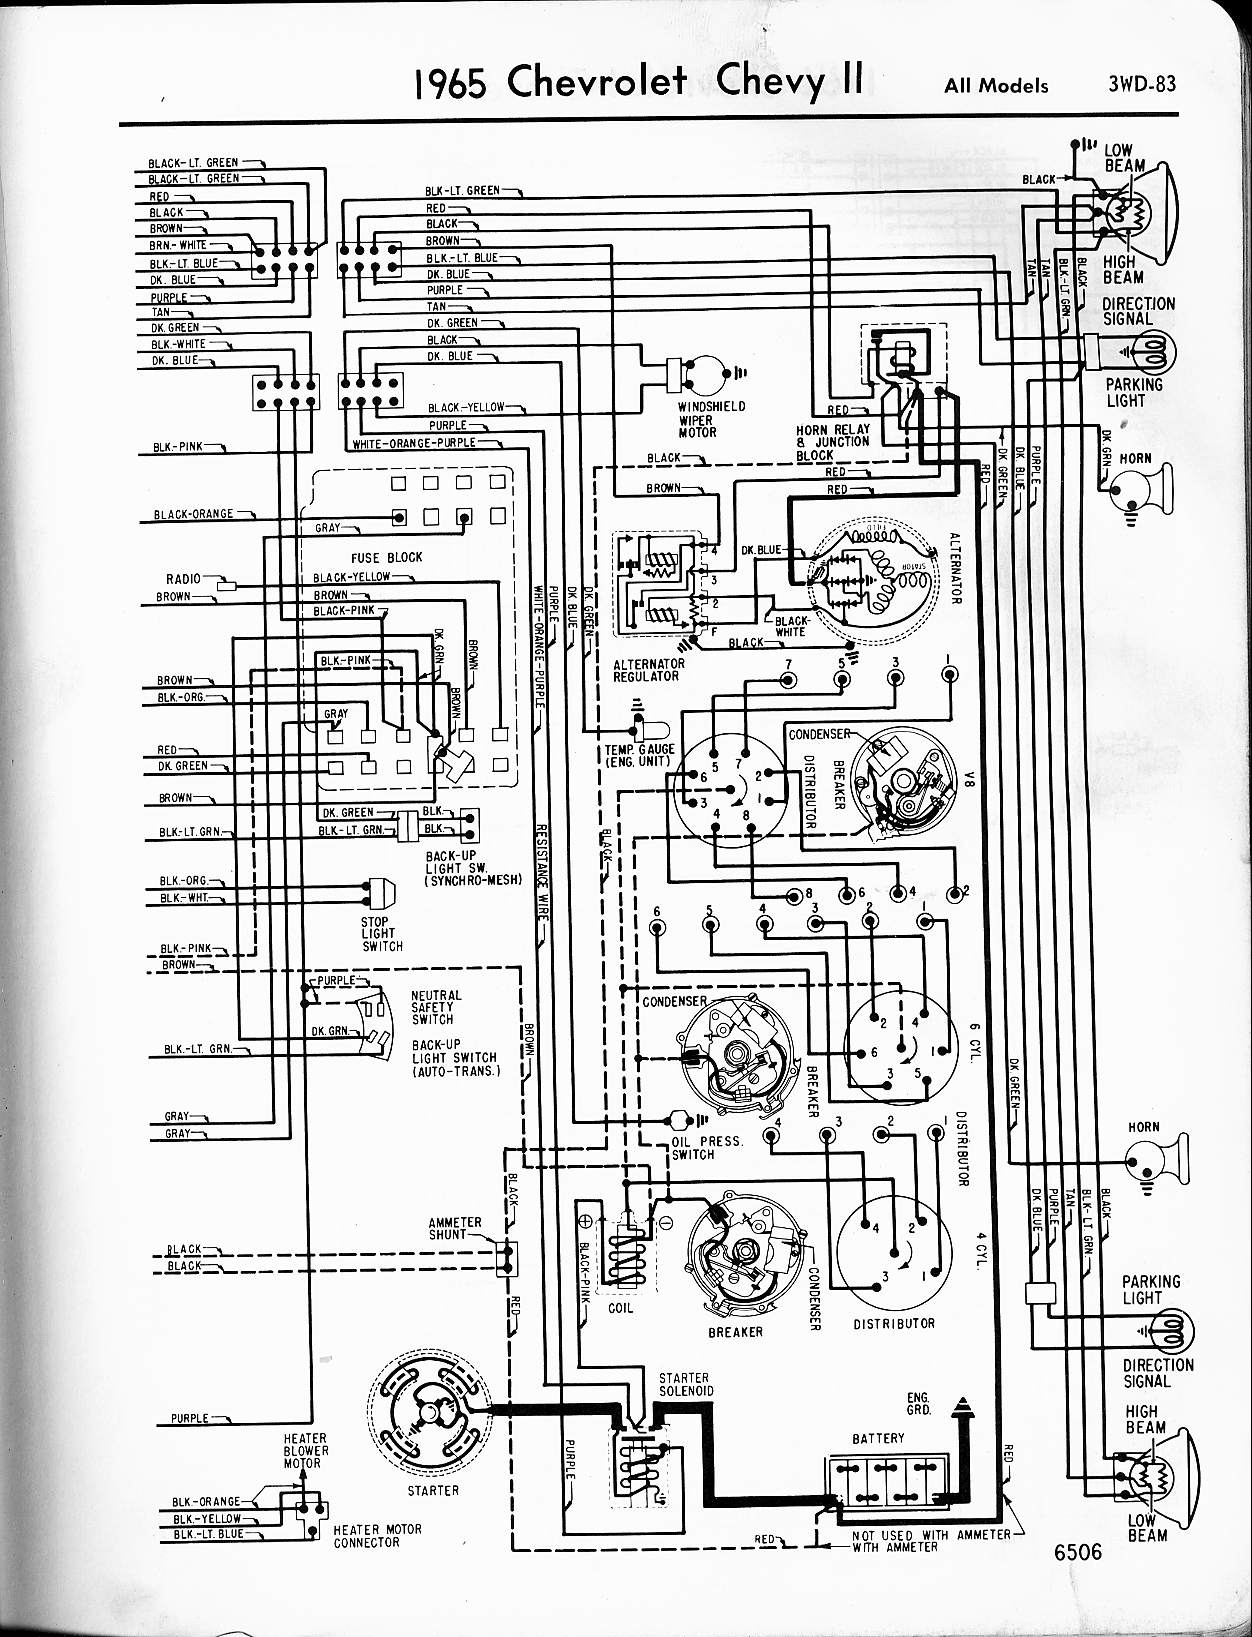 Tags Ford Thunderbird Fuse Box Diagram Wiring Diagrams Source 1995 E350 2016 Models Also Chevy Blank Vin On 1966 Cadillac